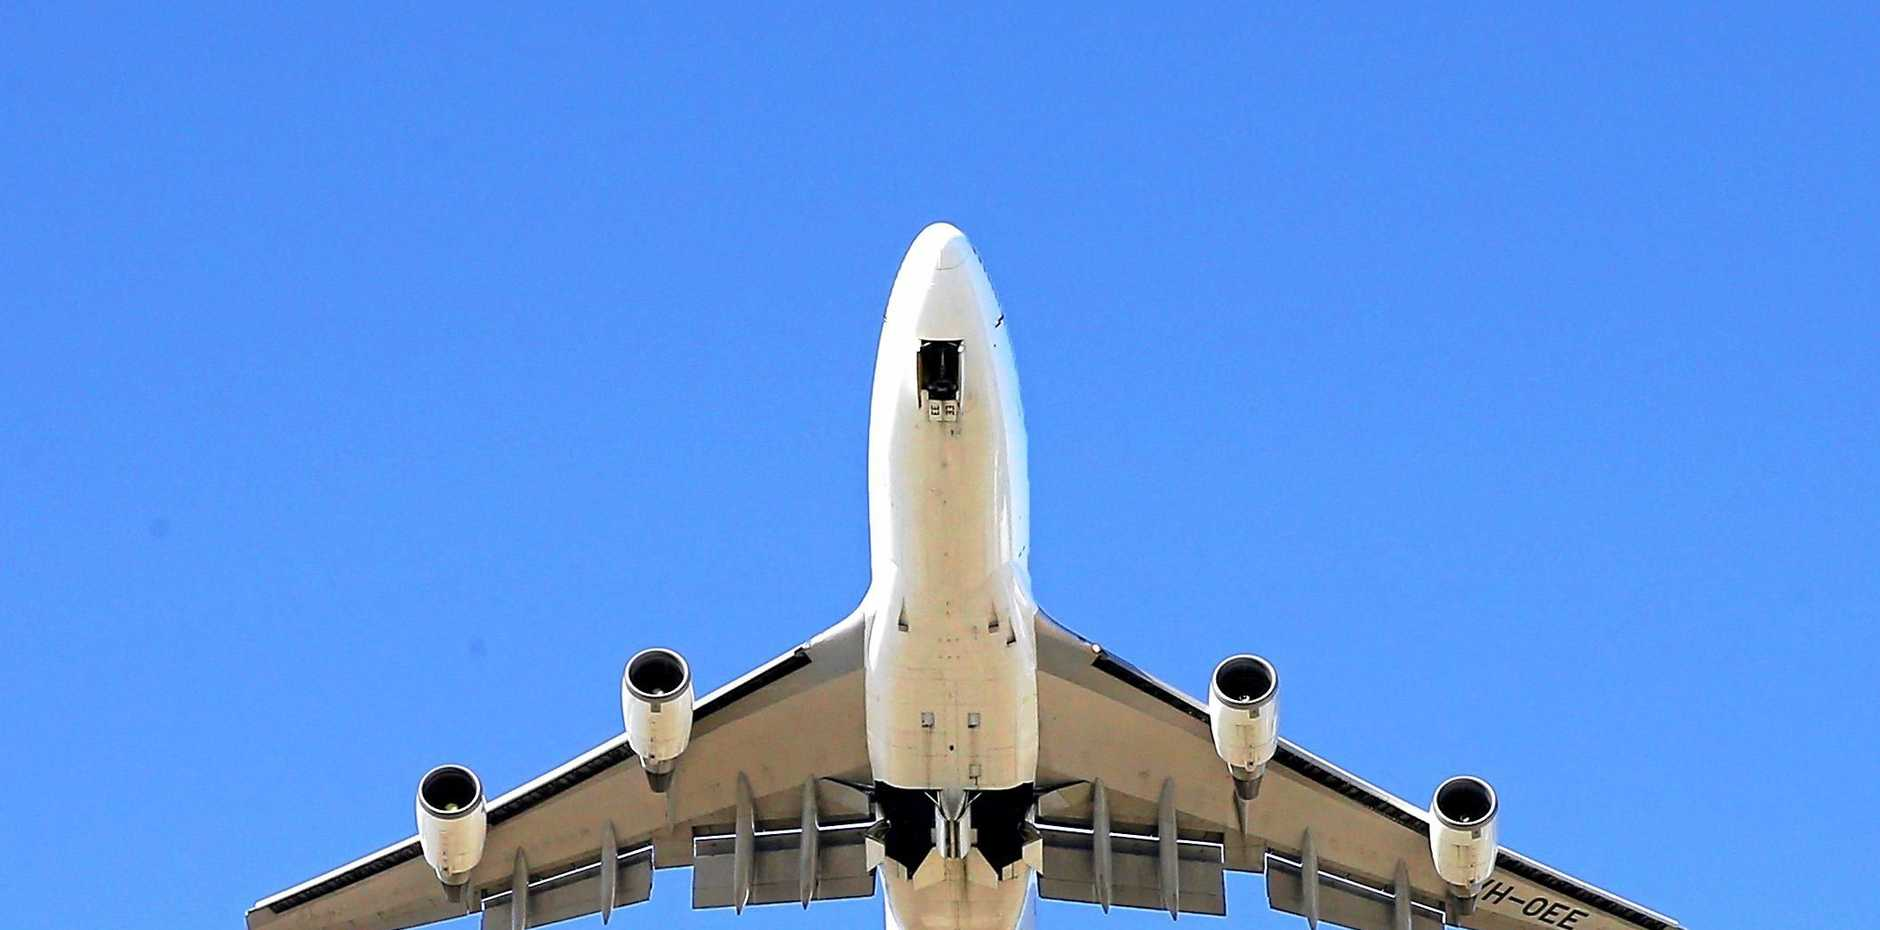 Passengers are fed up with high flight costs.